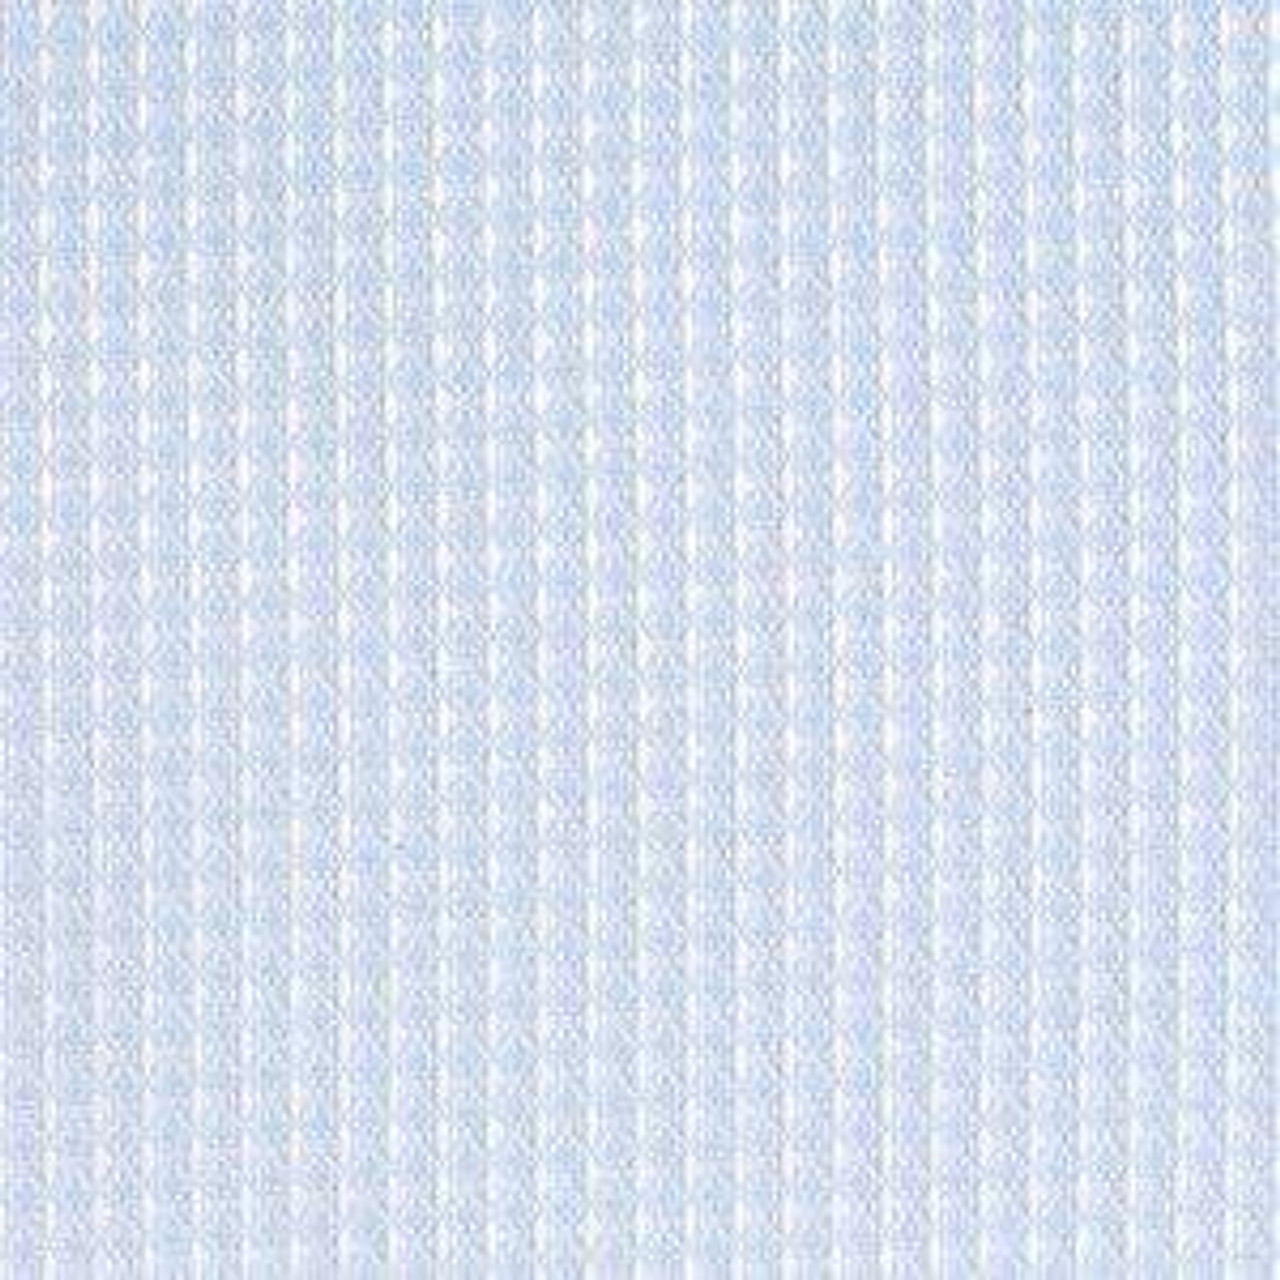 Focus Product Group Mini Waffle or Hookless or Polyester or Shower Curtain or Pack of 12 or 38.99 per/ea